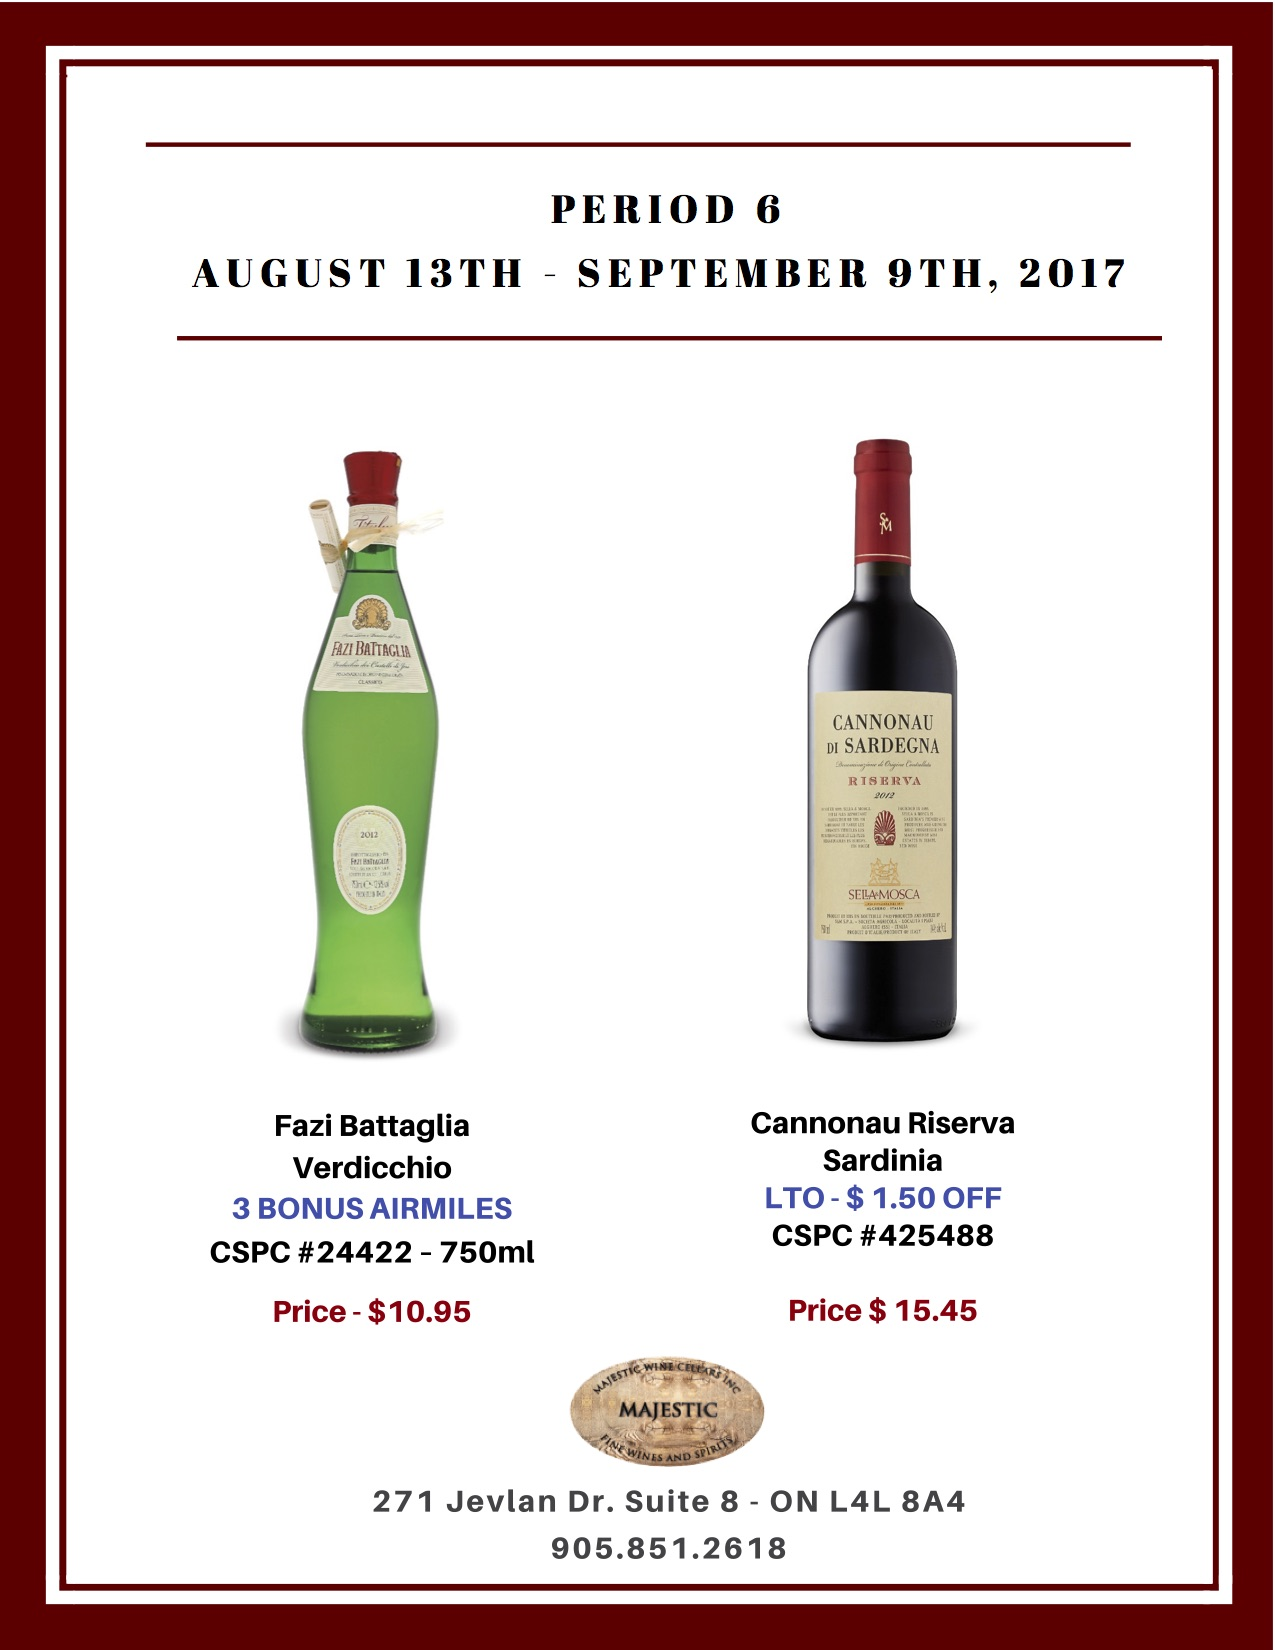 Period 6: August 13th  - September 9th Promotion